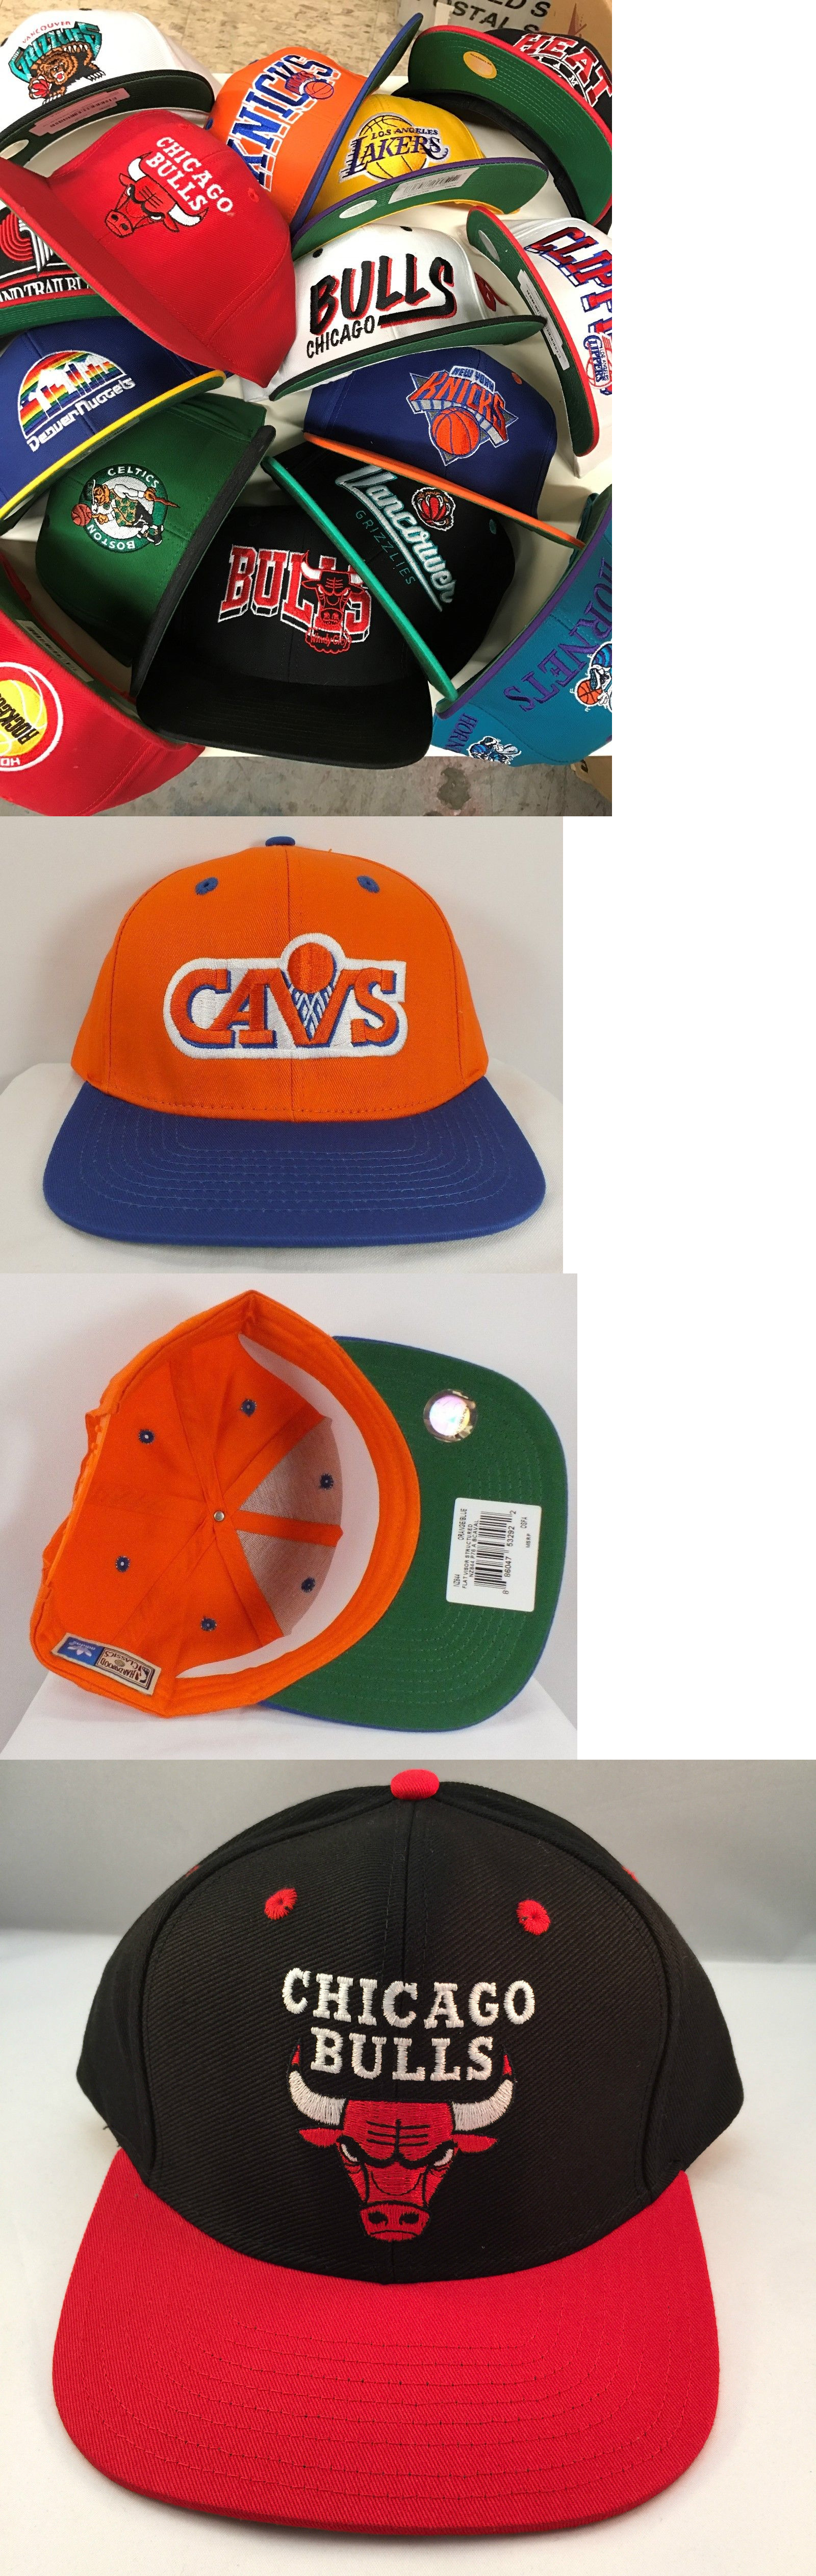 Game on closeouts sporting goods - Other Wholesale Sporting Goods 26423 Us Lot Of 15 New Closeout Wholesale Mens Nba Snapbacks